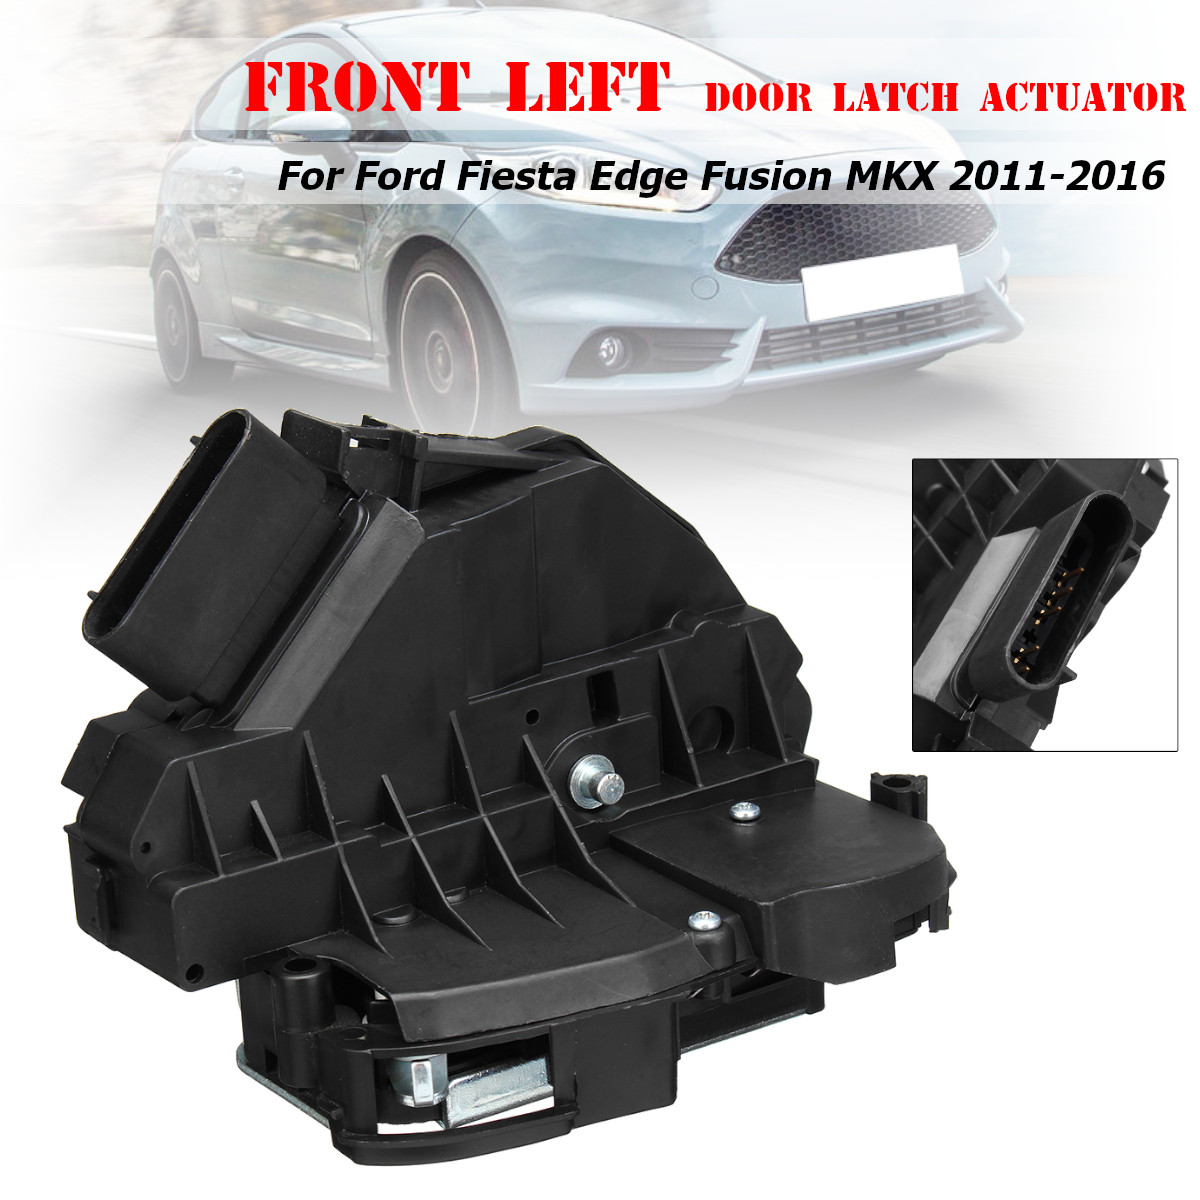 Car Front Left Door Latch Actuator Driver Side For Ford for Fiesta for Edge for Fusion MKX 2011 2012 2013 2014 2015 2016Car Front Left Door Latch Actuator Driver Side For Ford for Fiesta for Edge for Fusion MKX 2011 2012 2013 2014 2015 2016